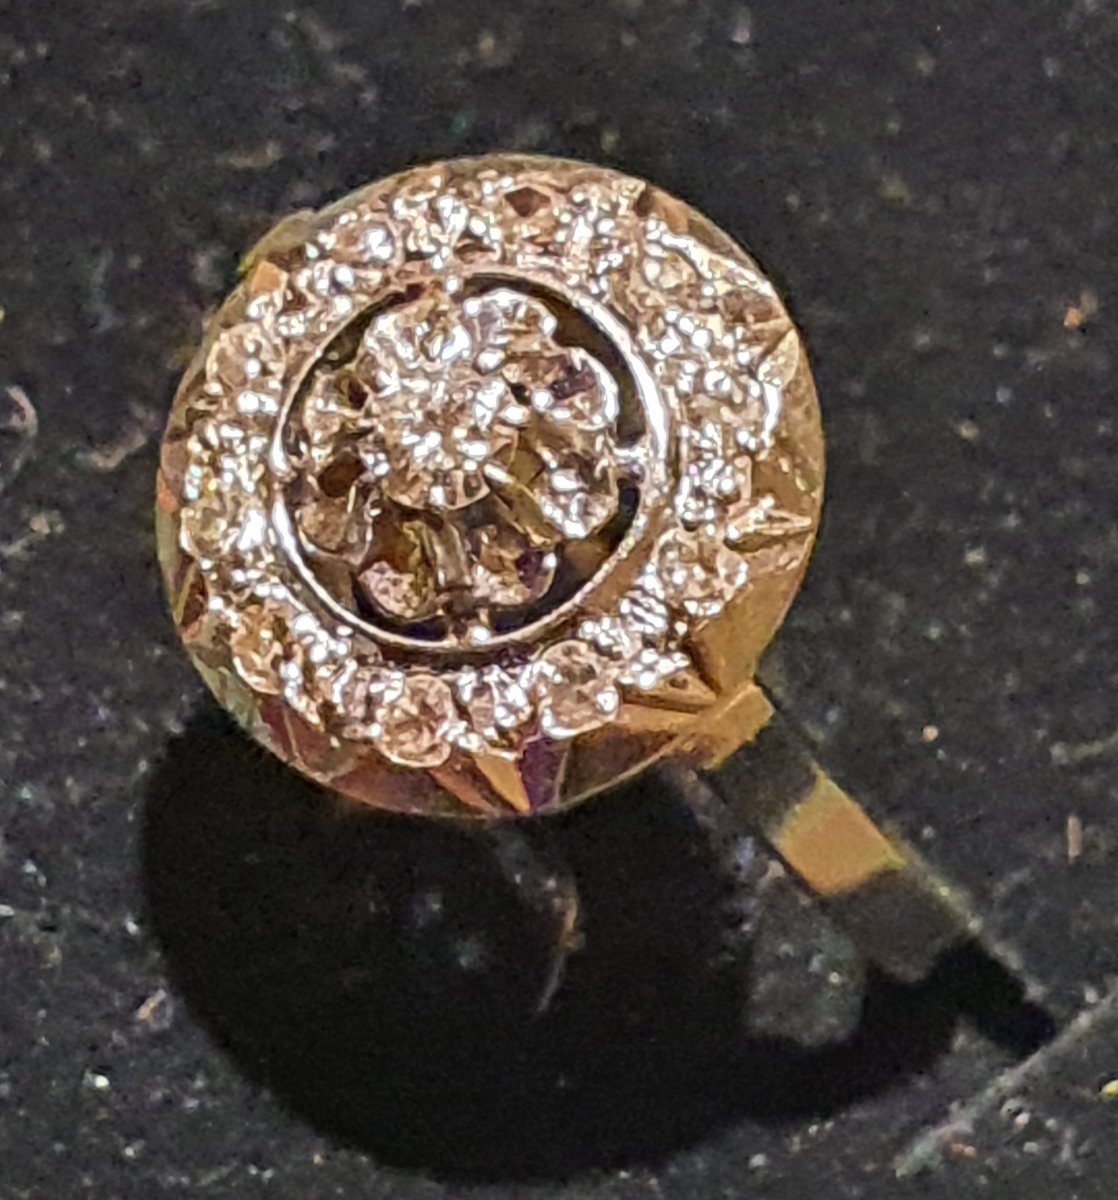 18 Kt Gold Ring Set With Old Cut Diamonds